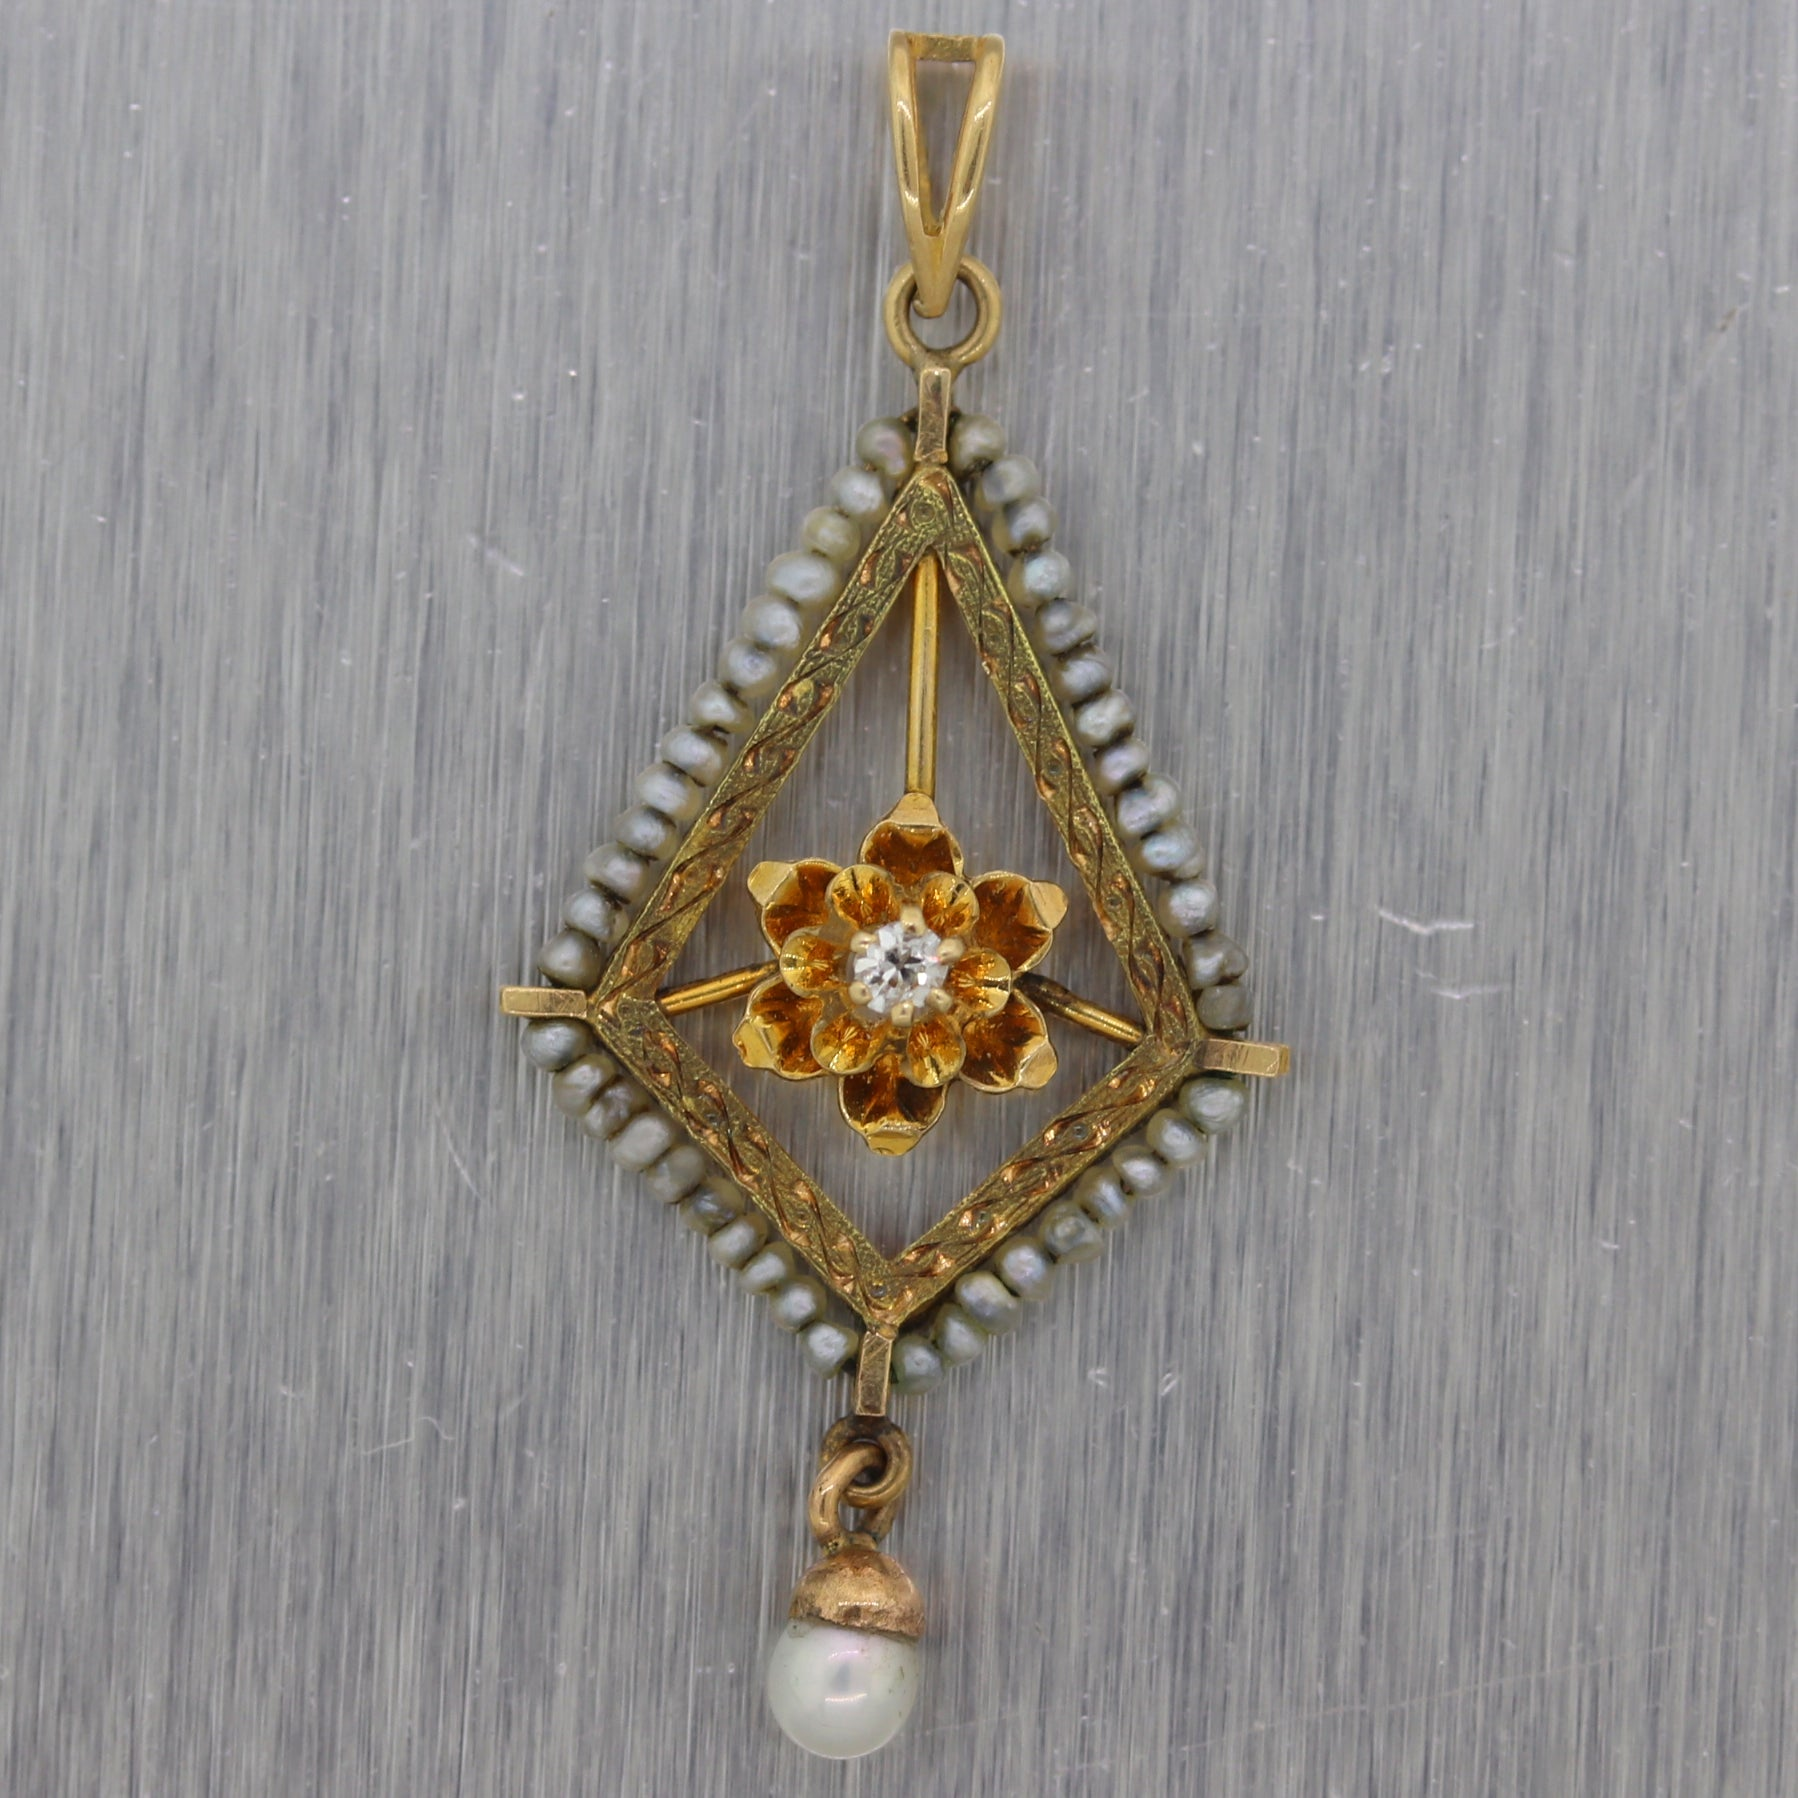 1890's Antique Victorian 14k Yellow Gold Diamond & Seed Pearl Pendant